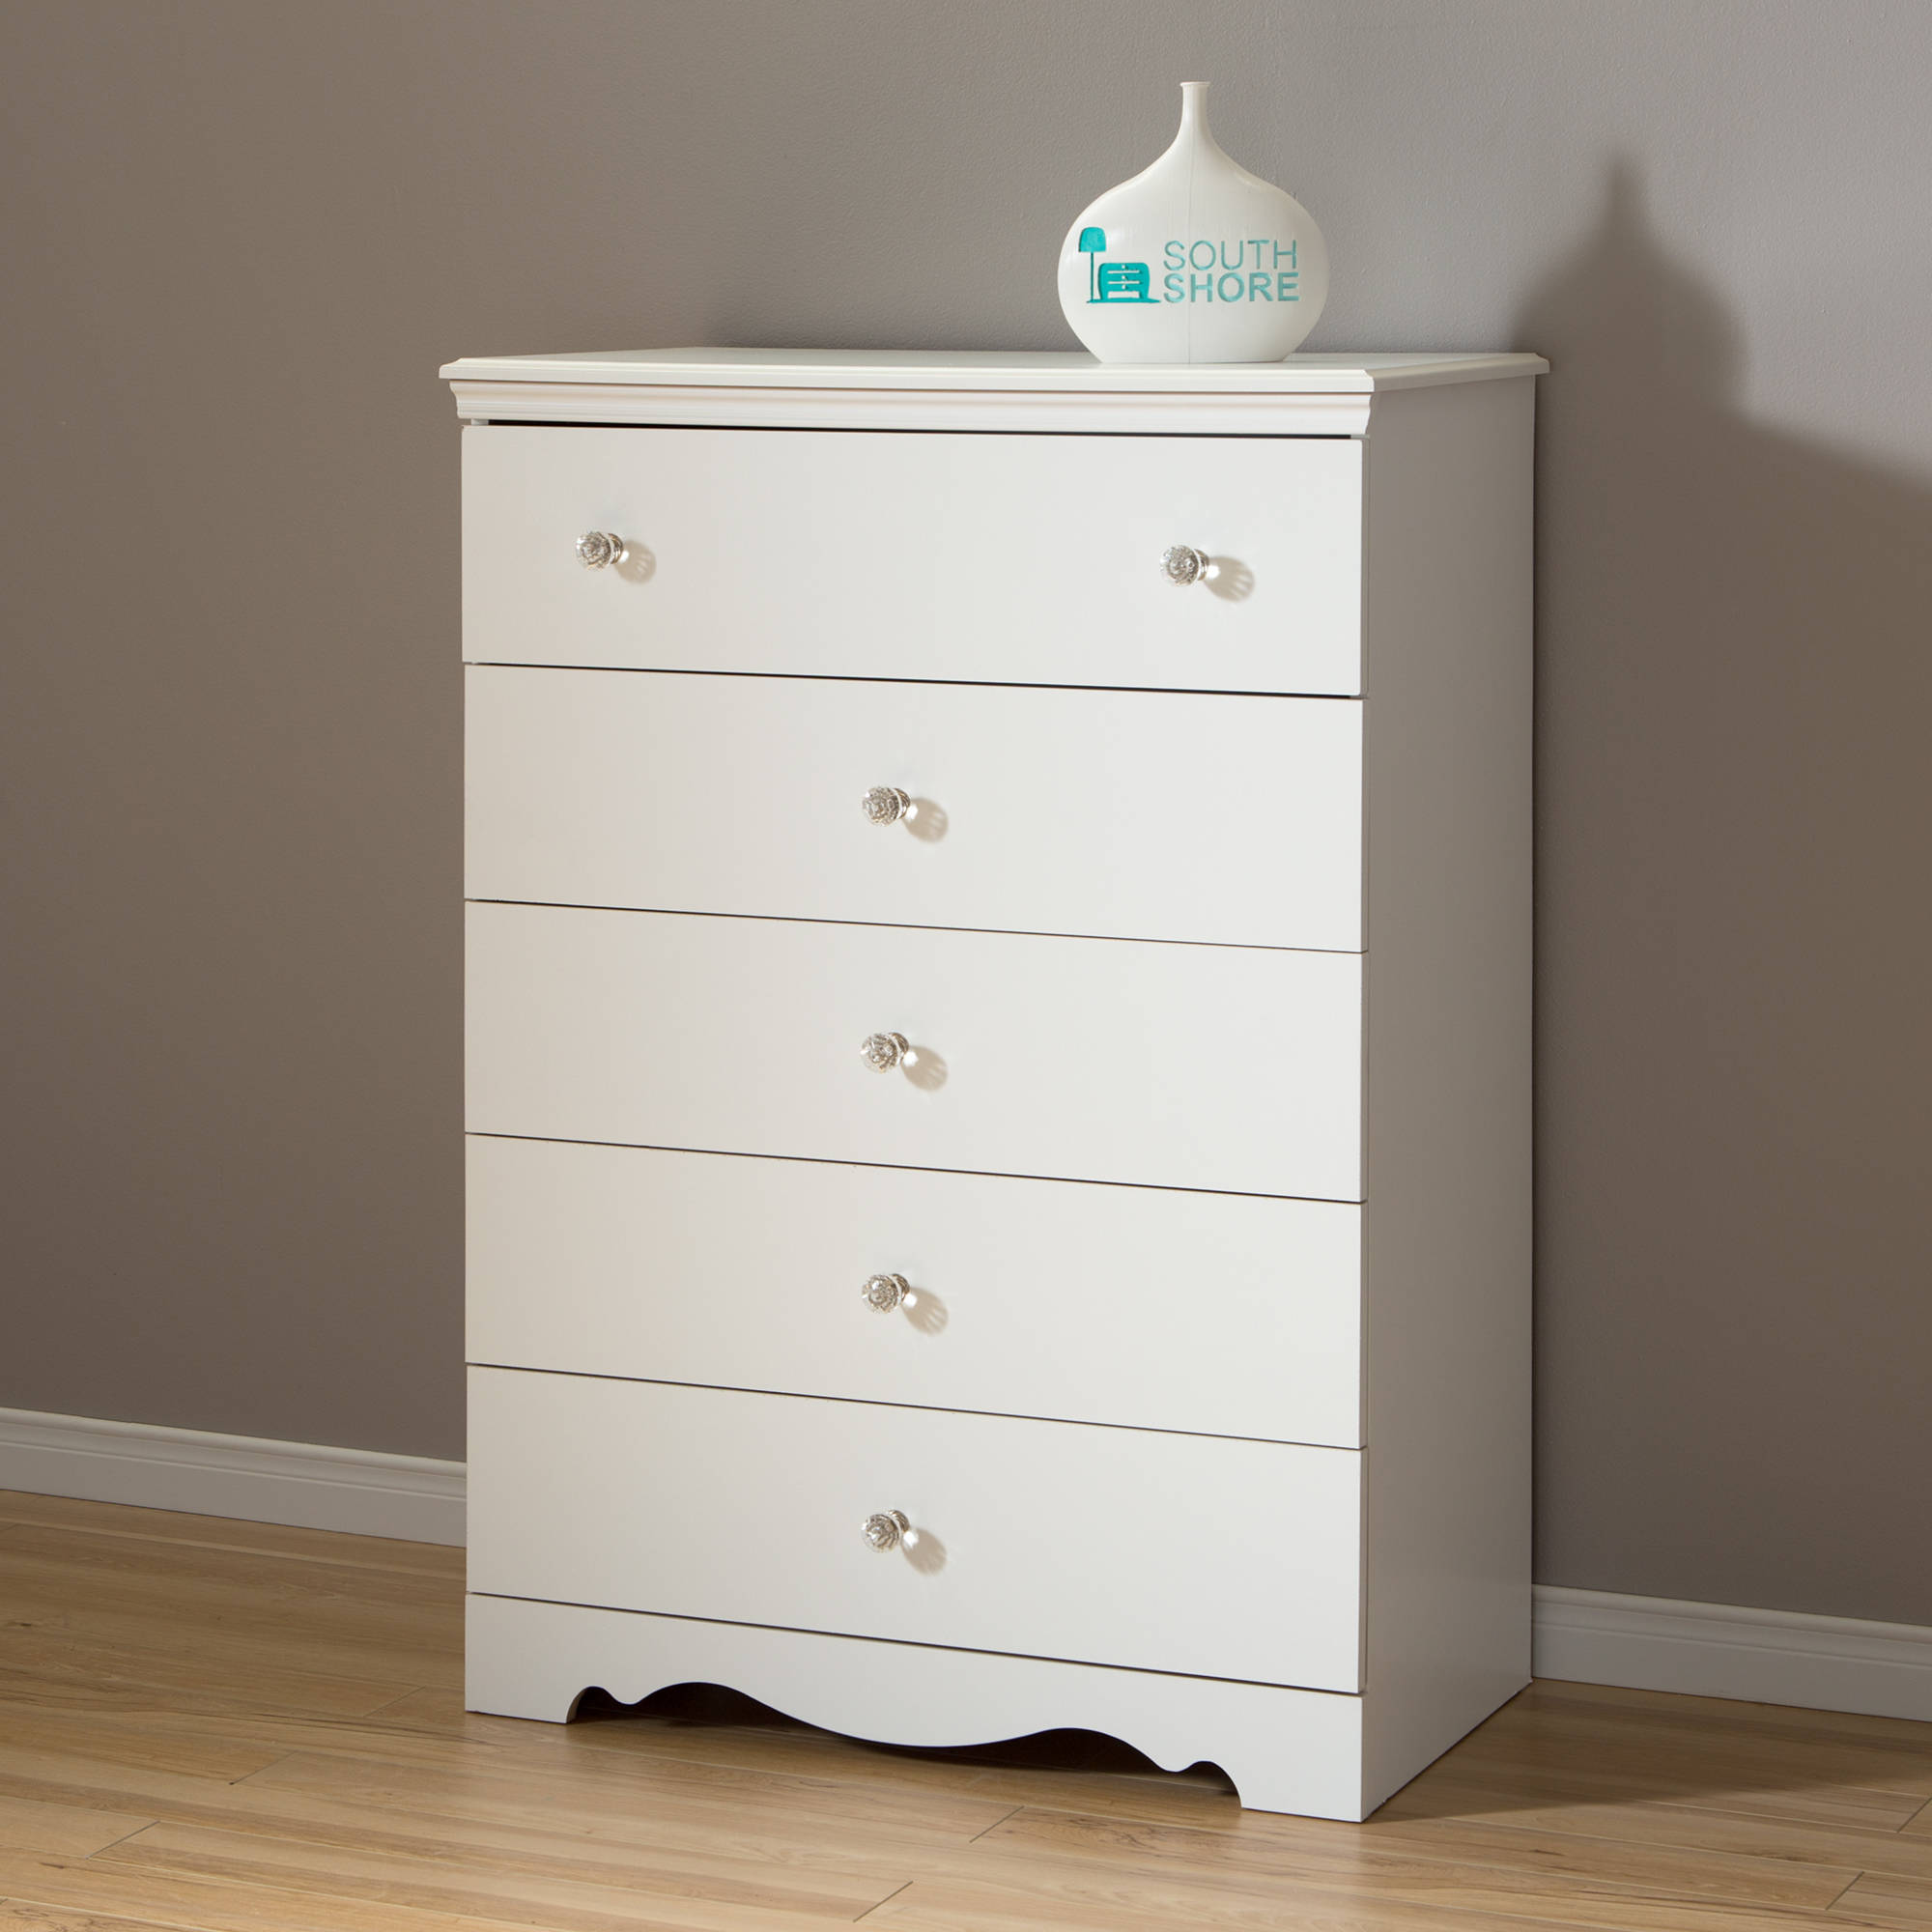 South Shore Crystal 5-Drawer Chest, Multiple Finishes